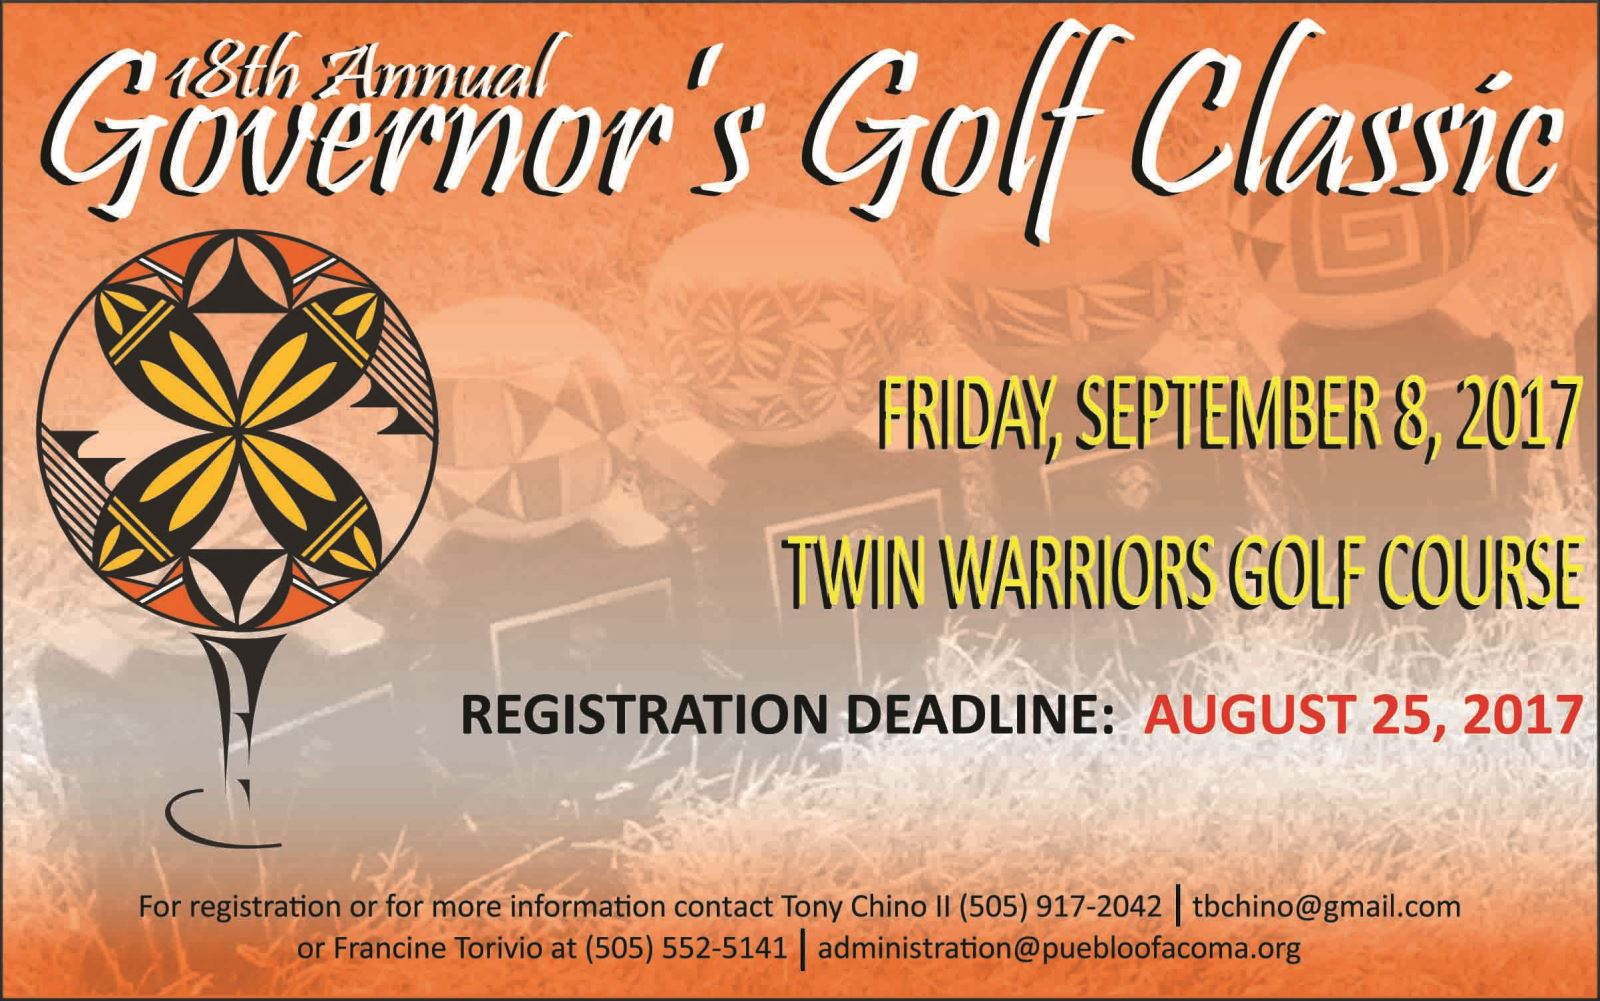 18th Annual Governor's Golf Classic